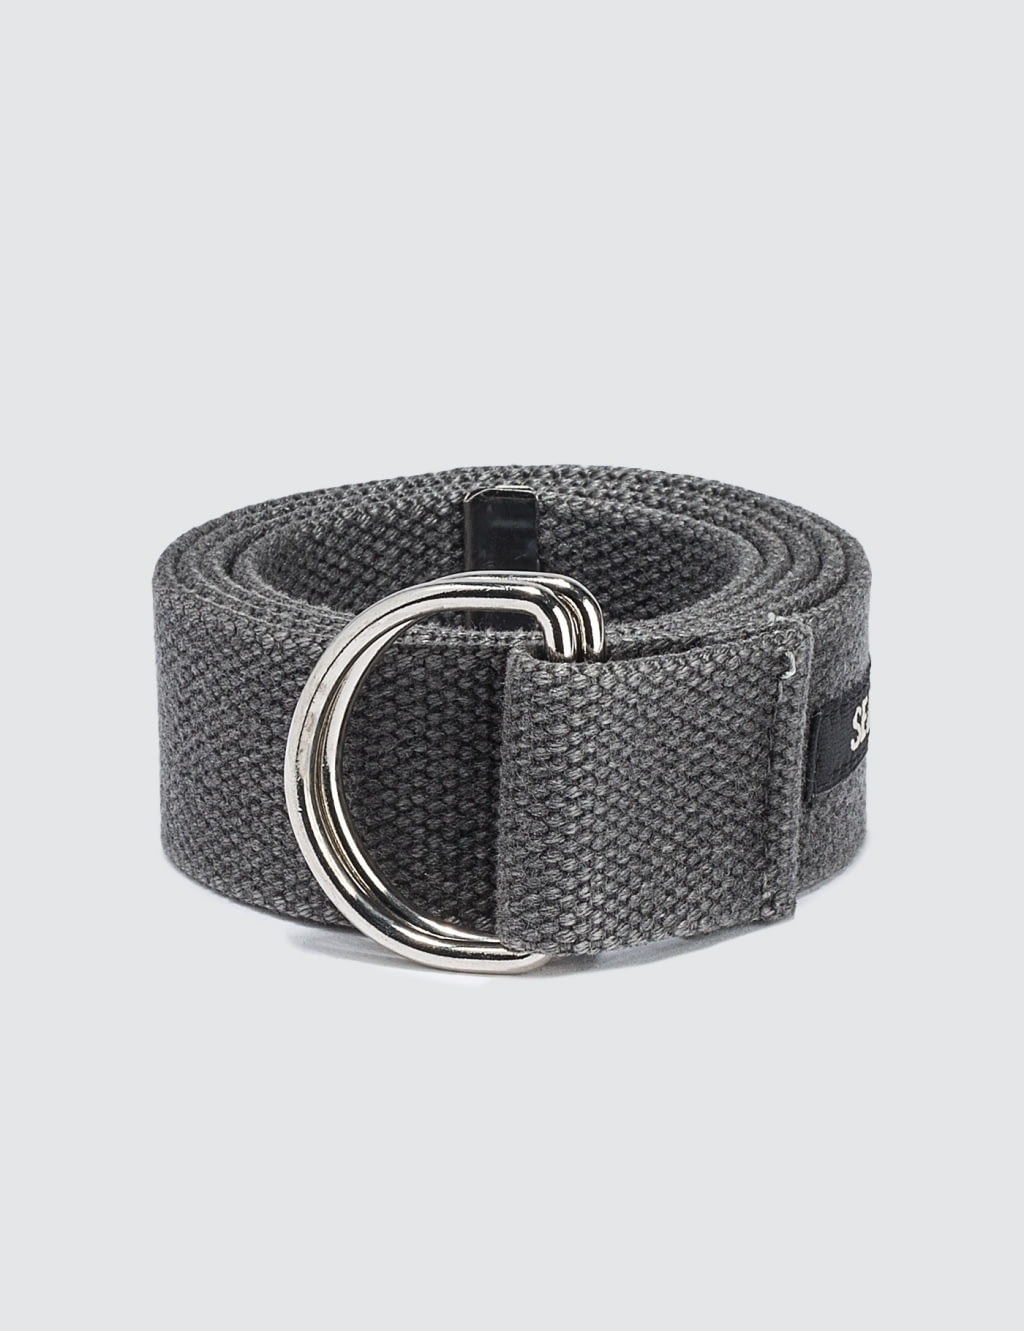 Web belt - Grey Yeezy by Kanye West